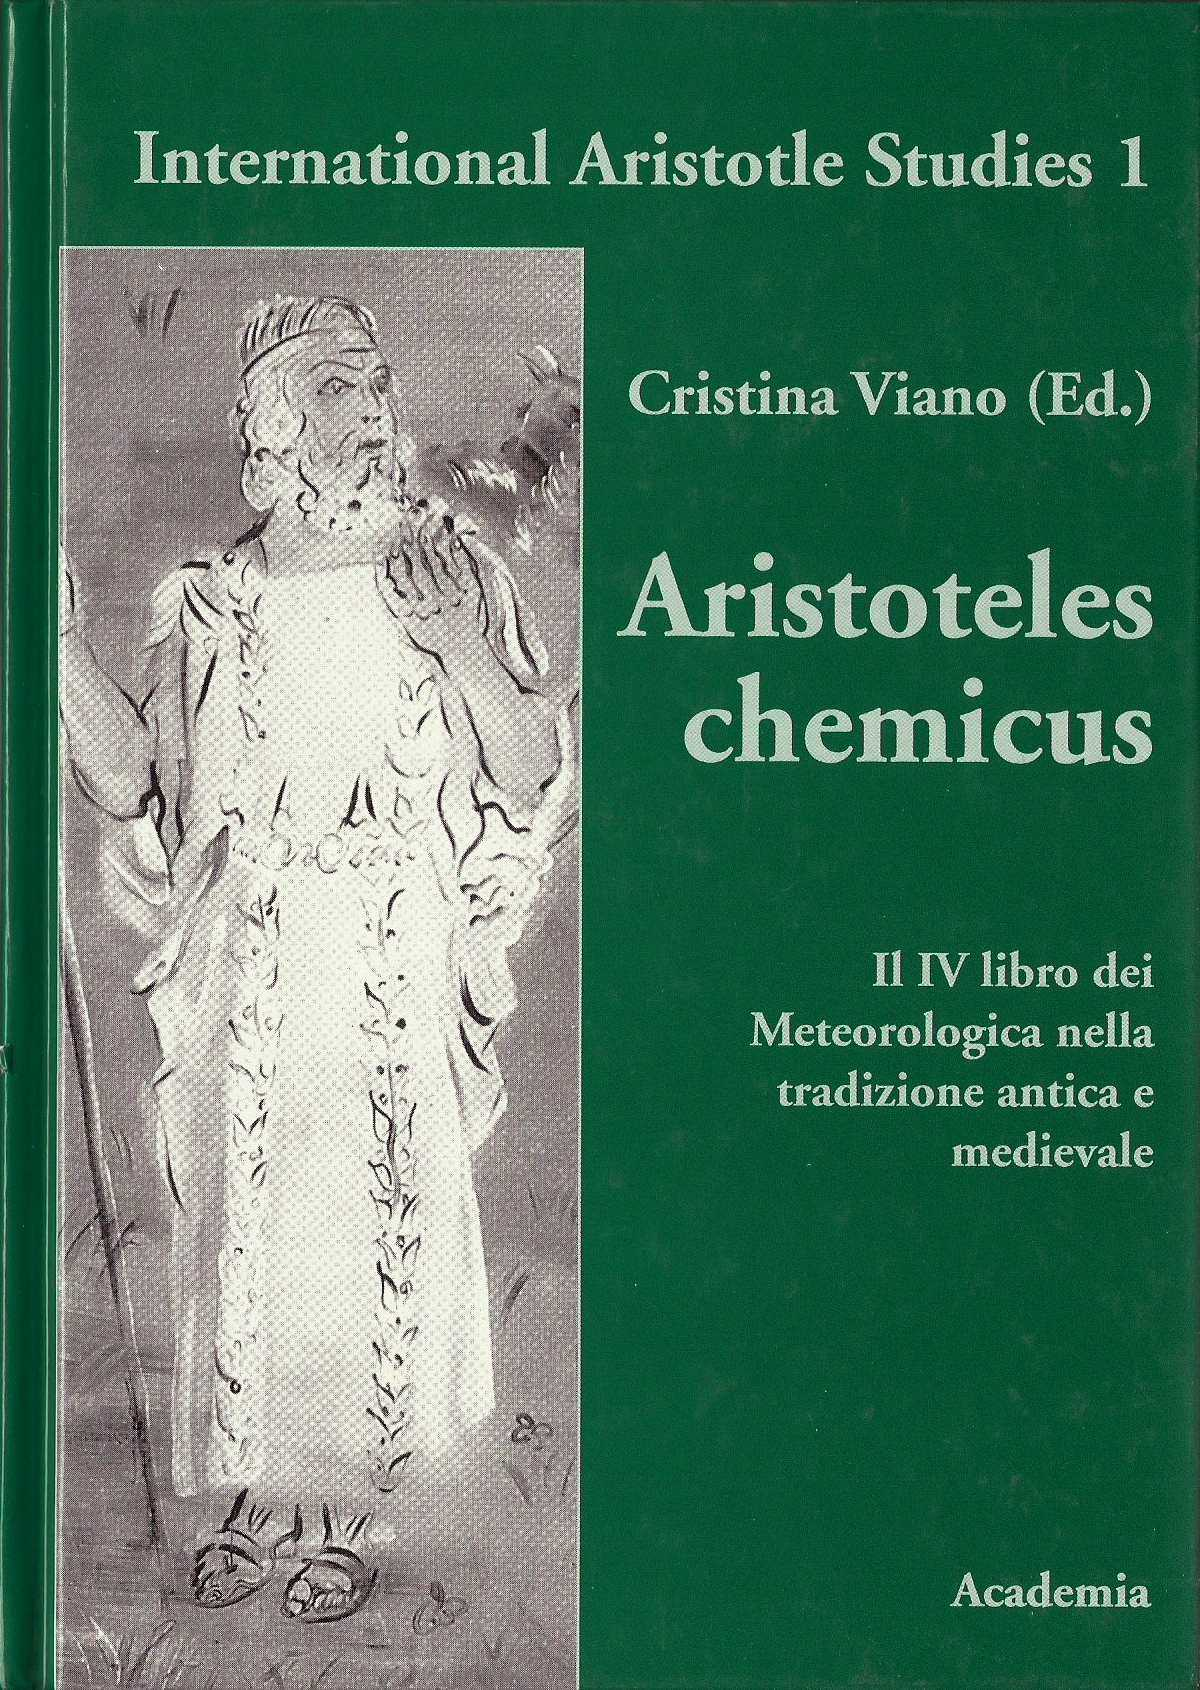 images/publications/aristoteles chemicus.jpeg